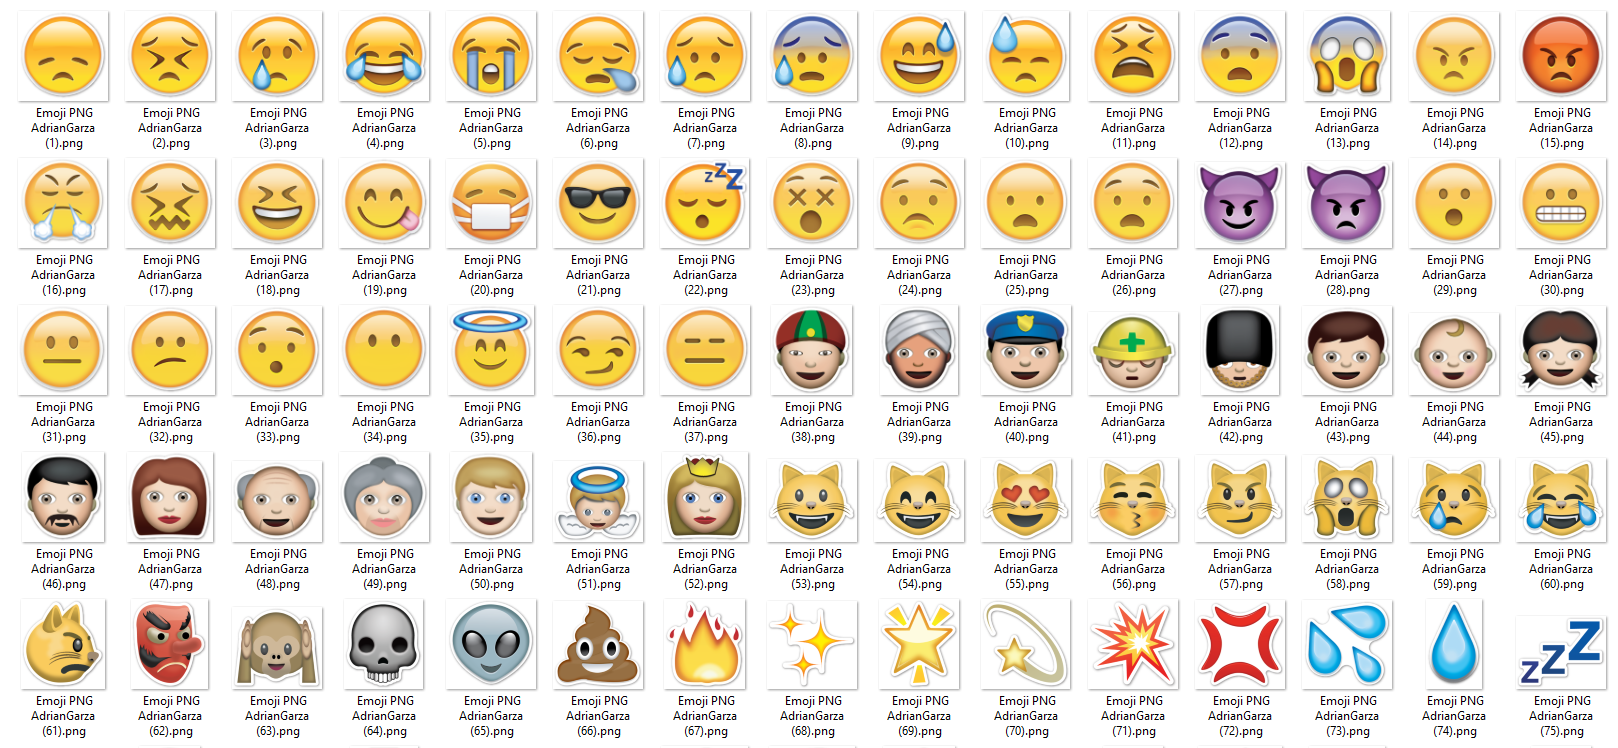 Emojis de Whatsapp Descarga Gratis Pack 230